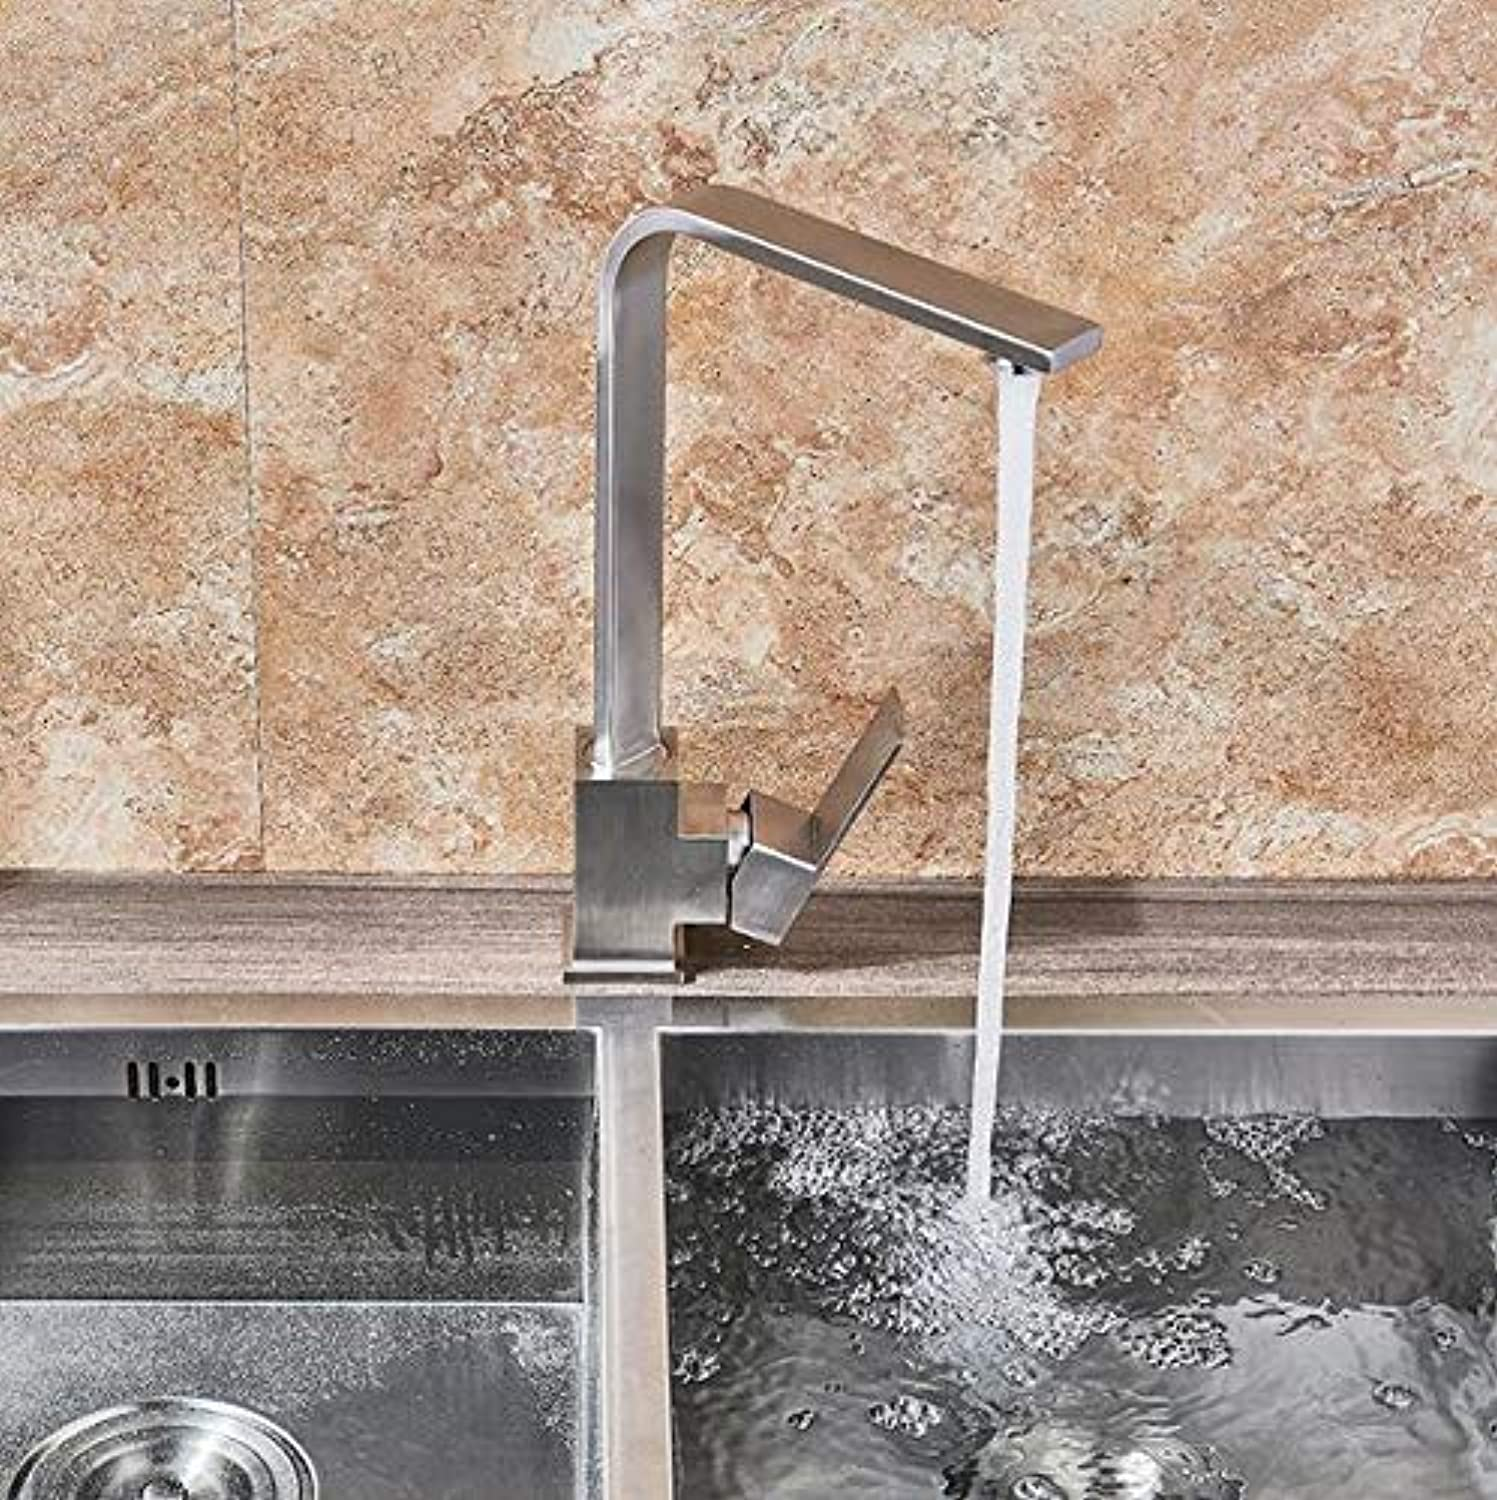 Makej Kitchen Faucet Chrome Brushed Brass Deck Kitchen Sinks Faucet High Arch 360 Degree redating Swivel Cold Hot Mixer Water Tap